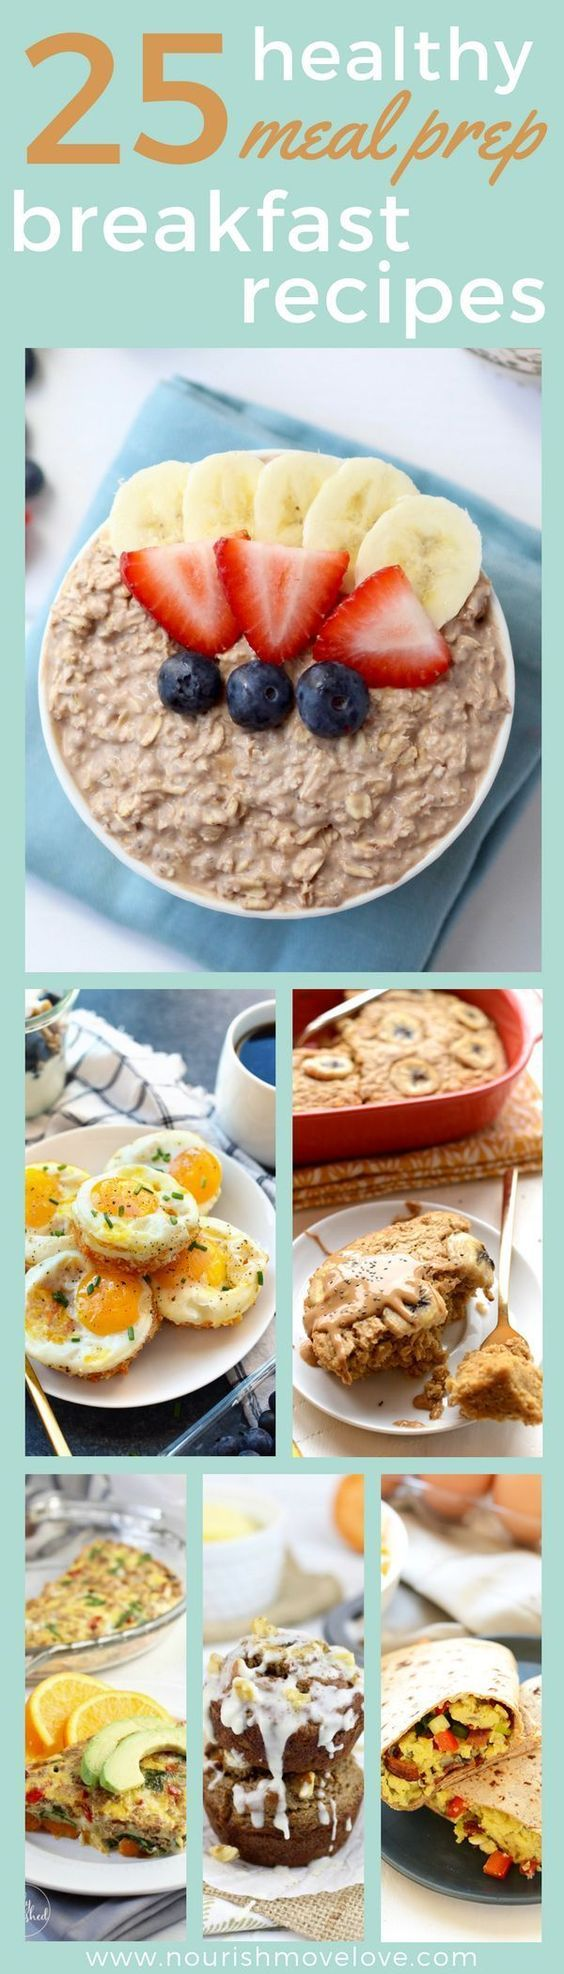 25 healthy meal prep breakfast recipes. Clean eati…